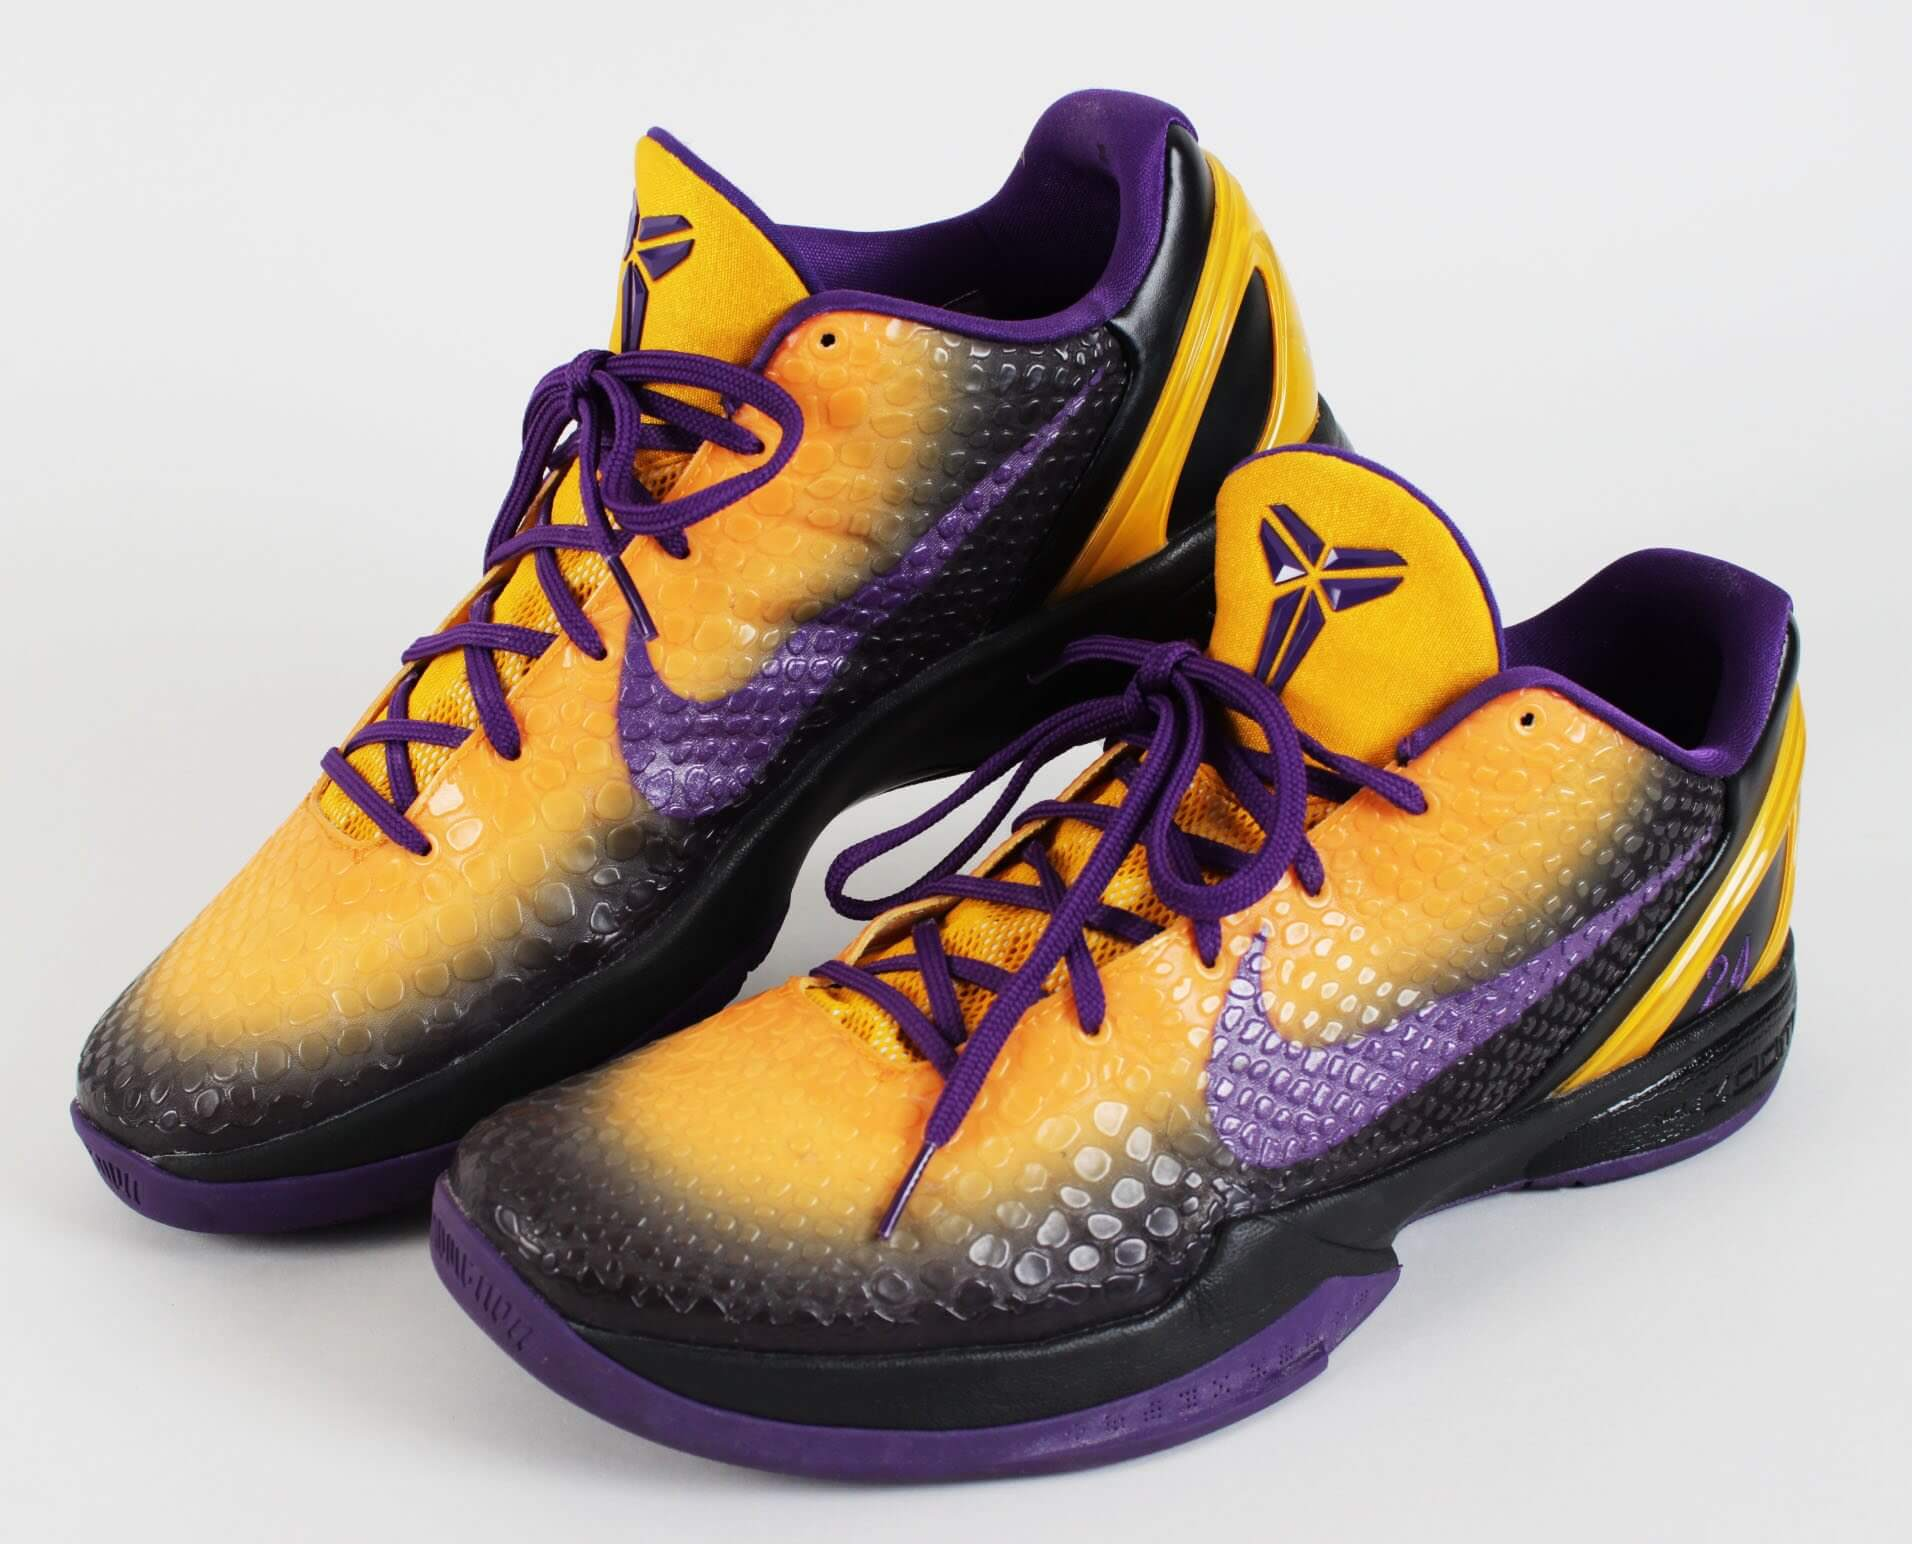 purchase cheap 109e6 fd086 2010-11 Los Angeles Lakers – Kobe Bryant Worn Shoes Custom Mamba Snake NIKE  iD Zoom VI Sneakers